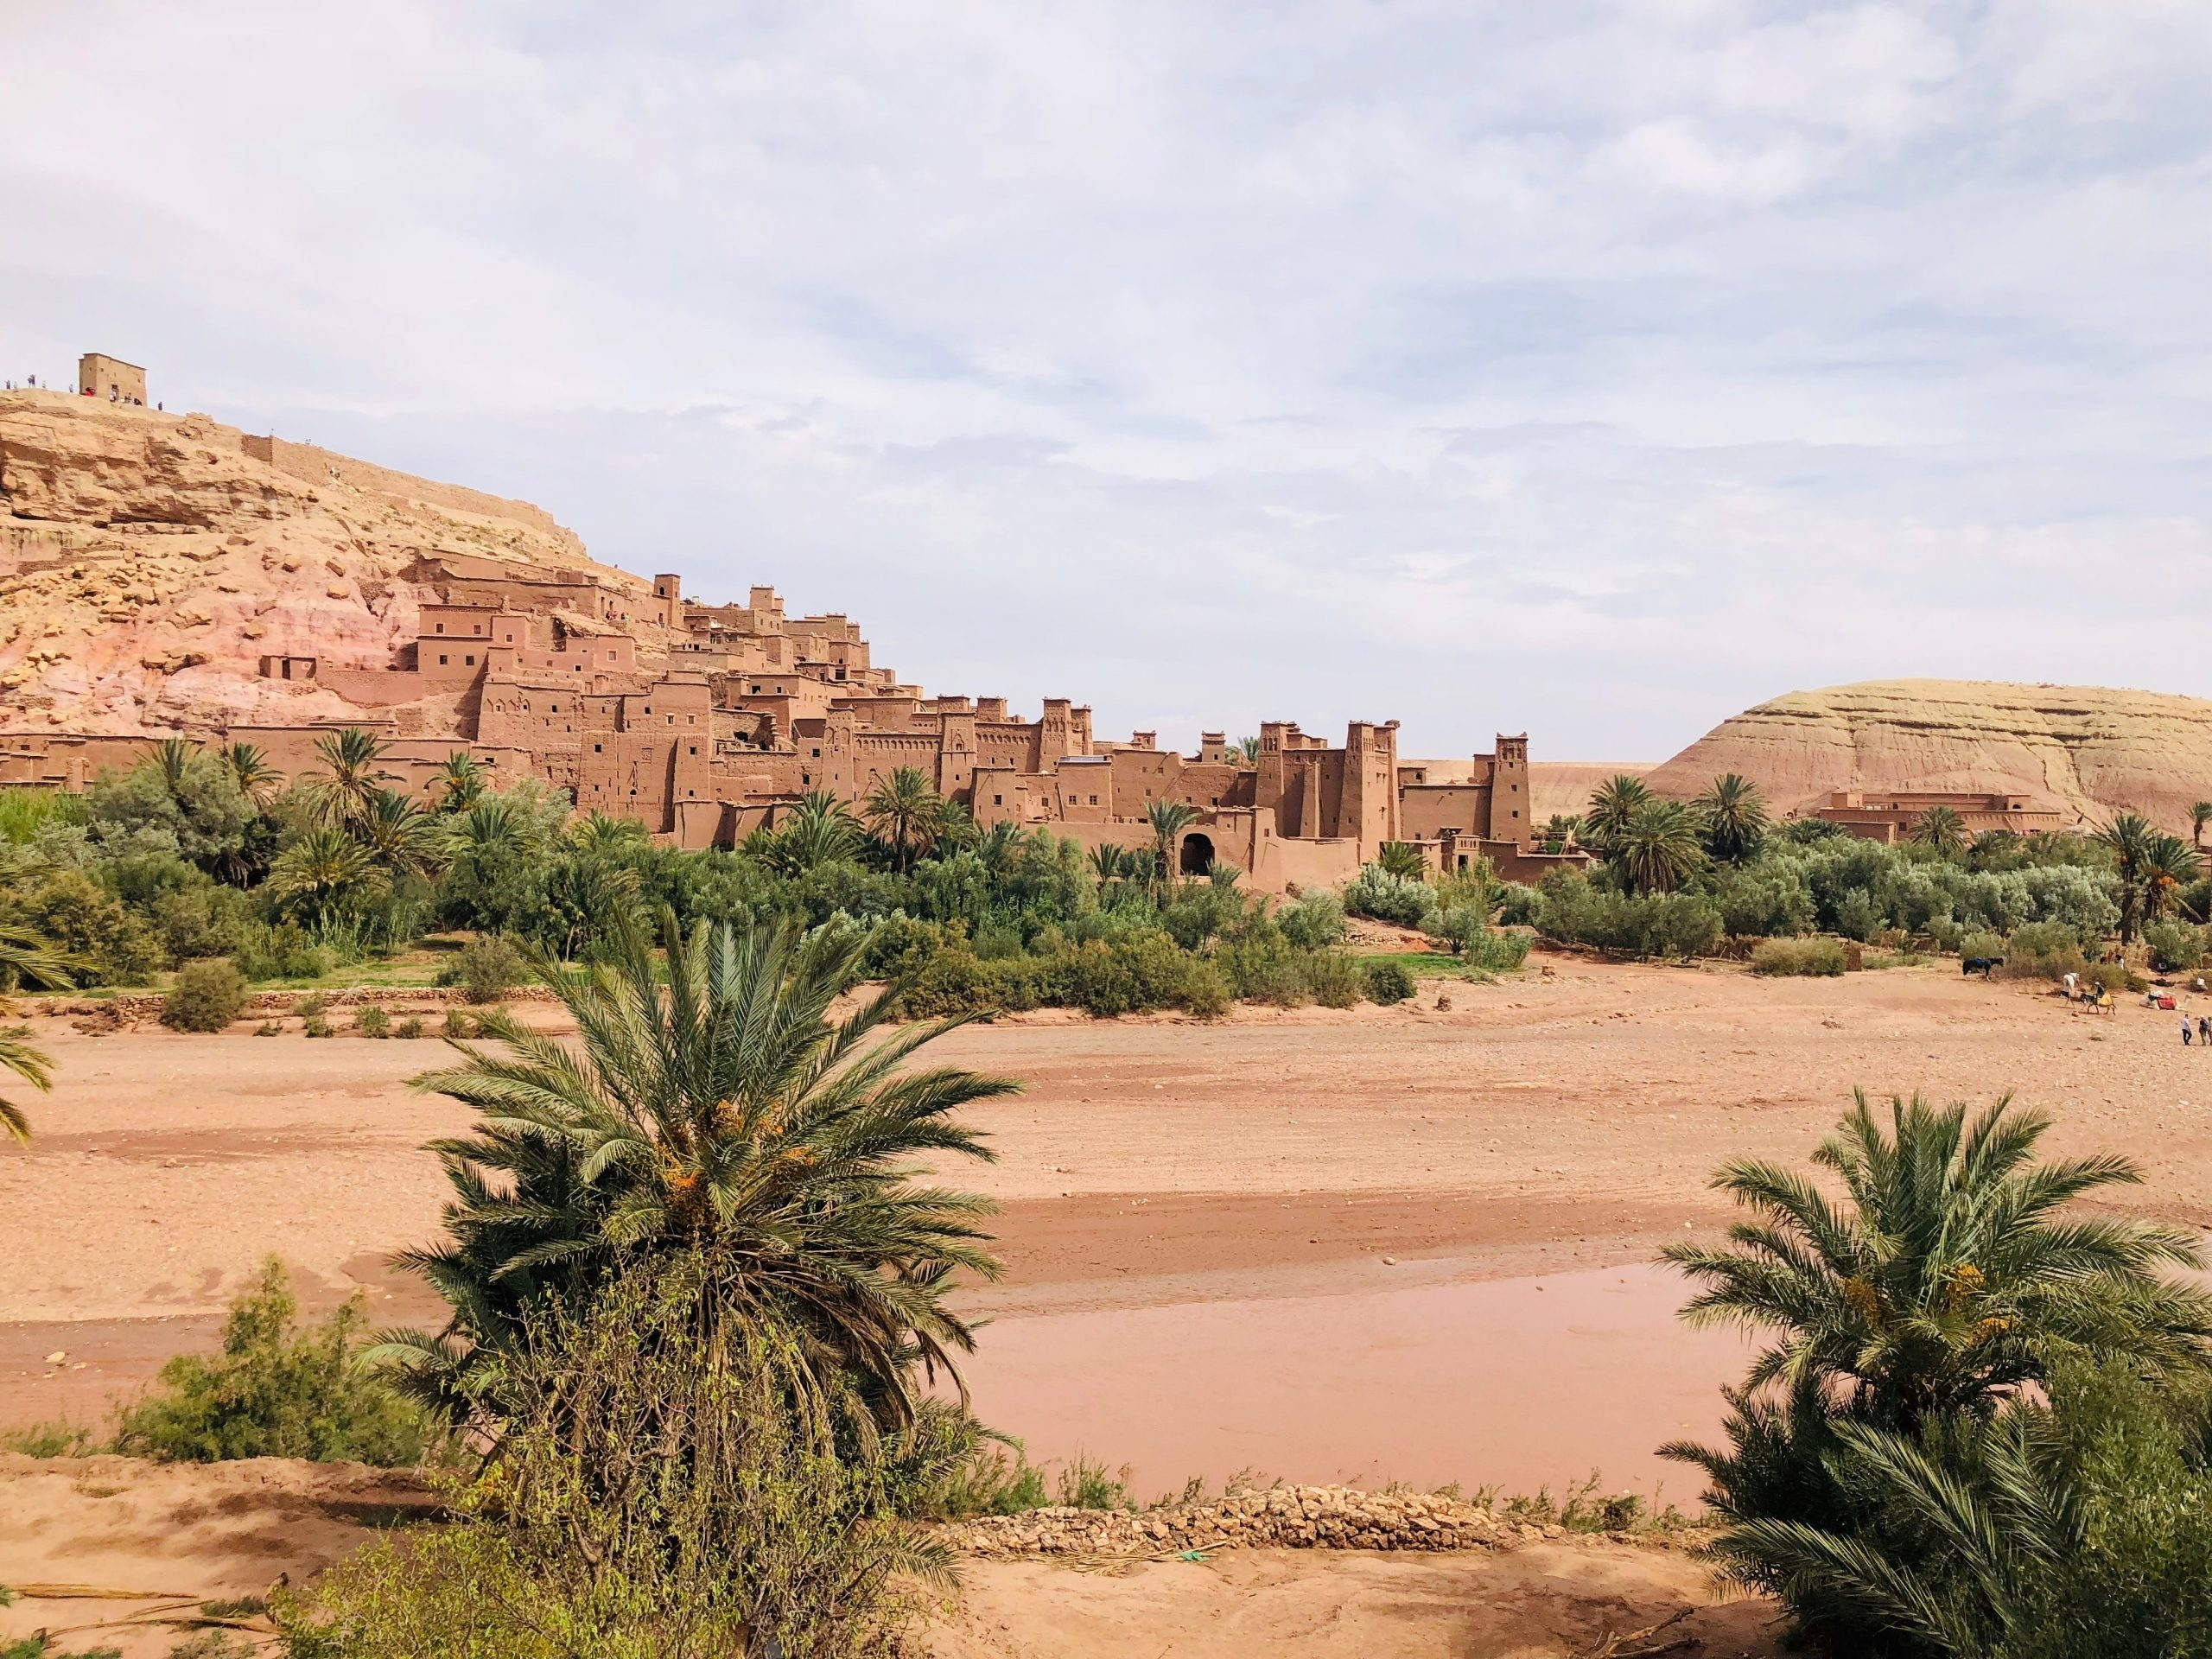 gallery image for Wonders Of Morocco